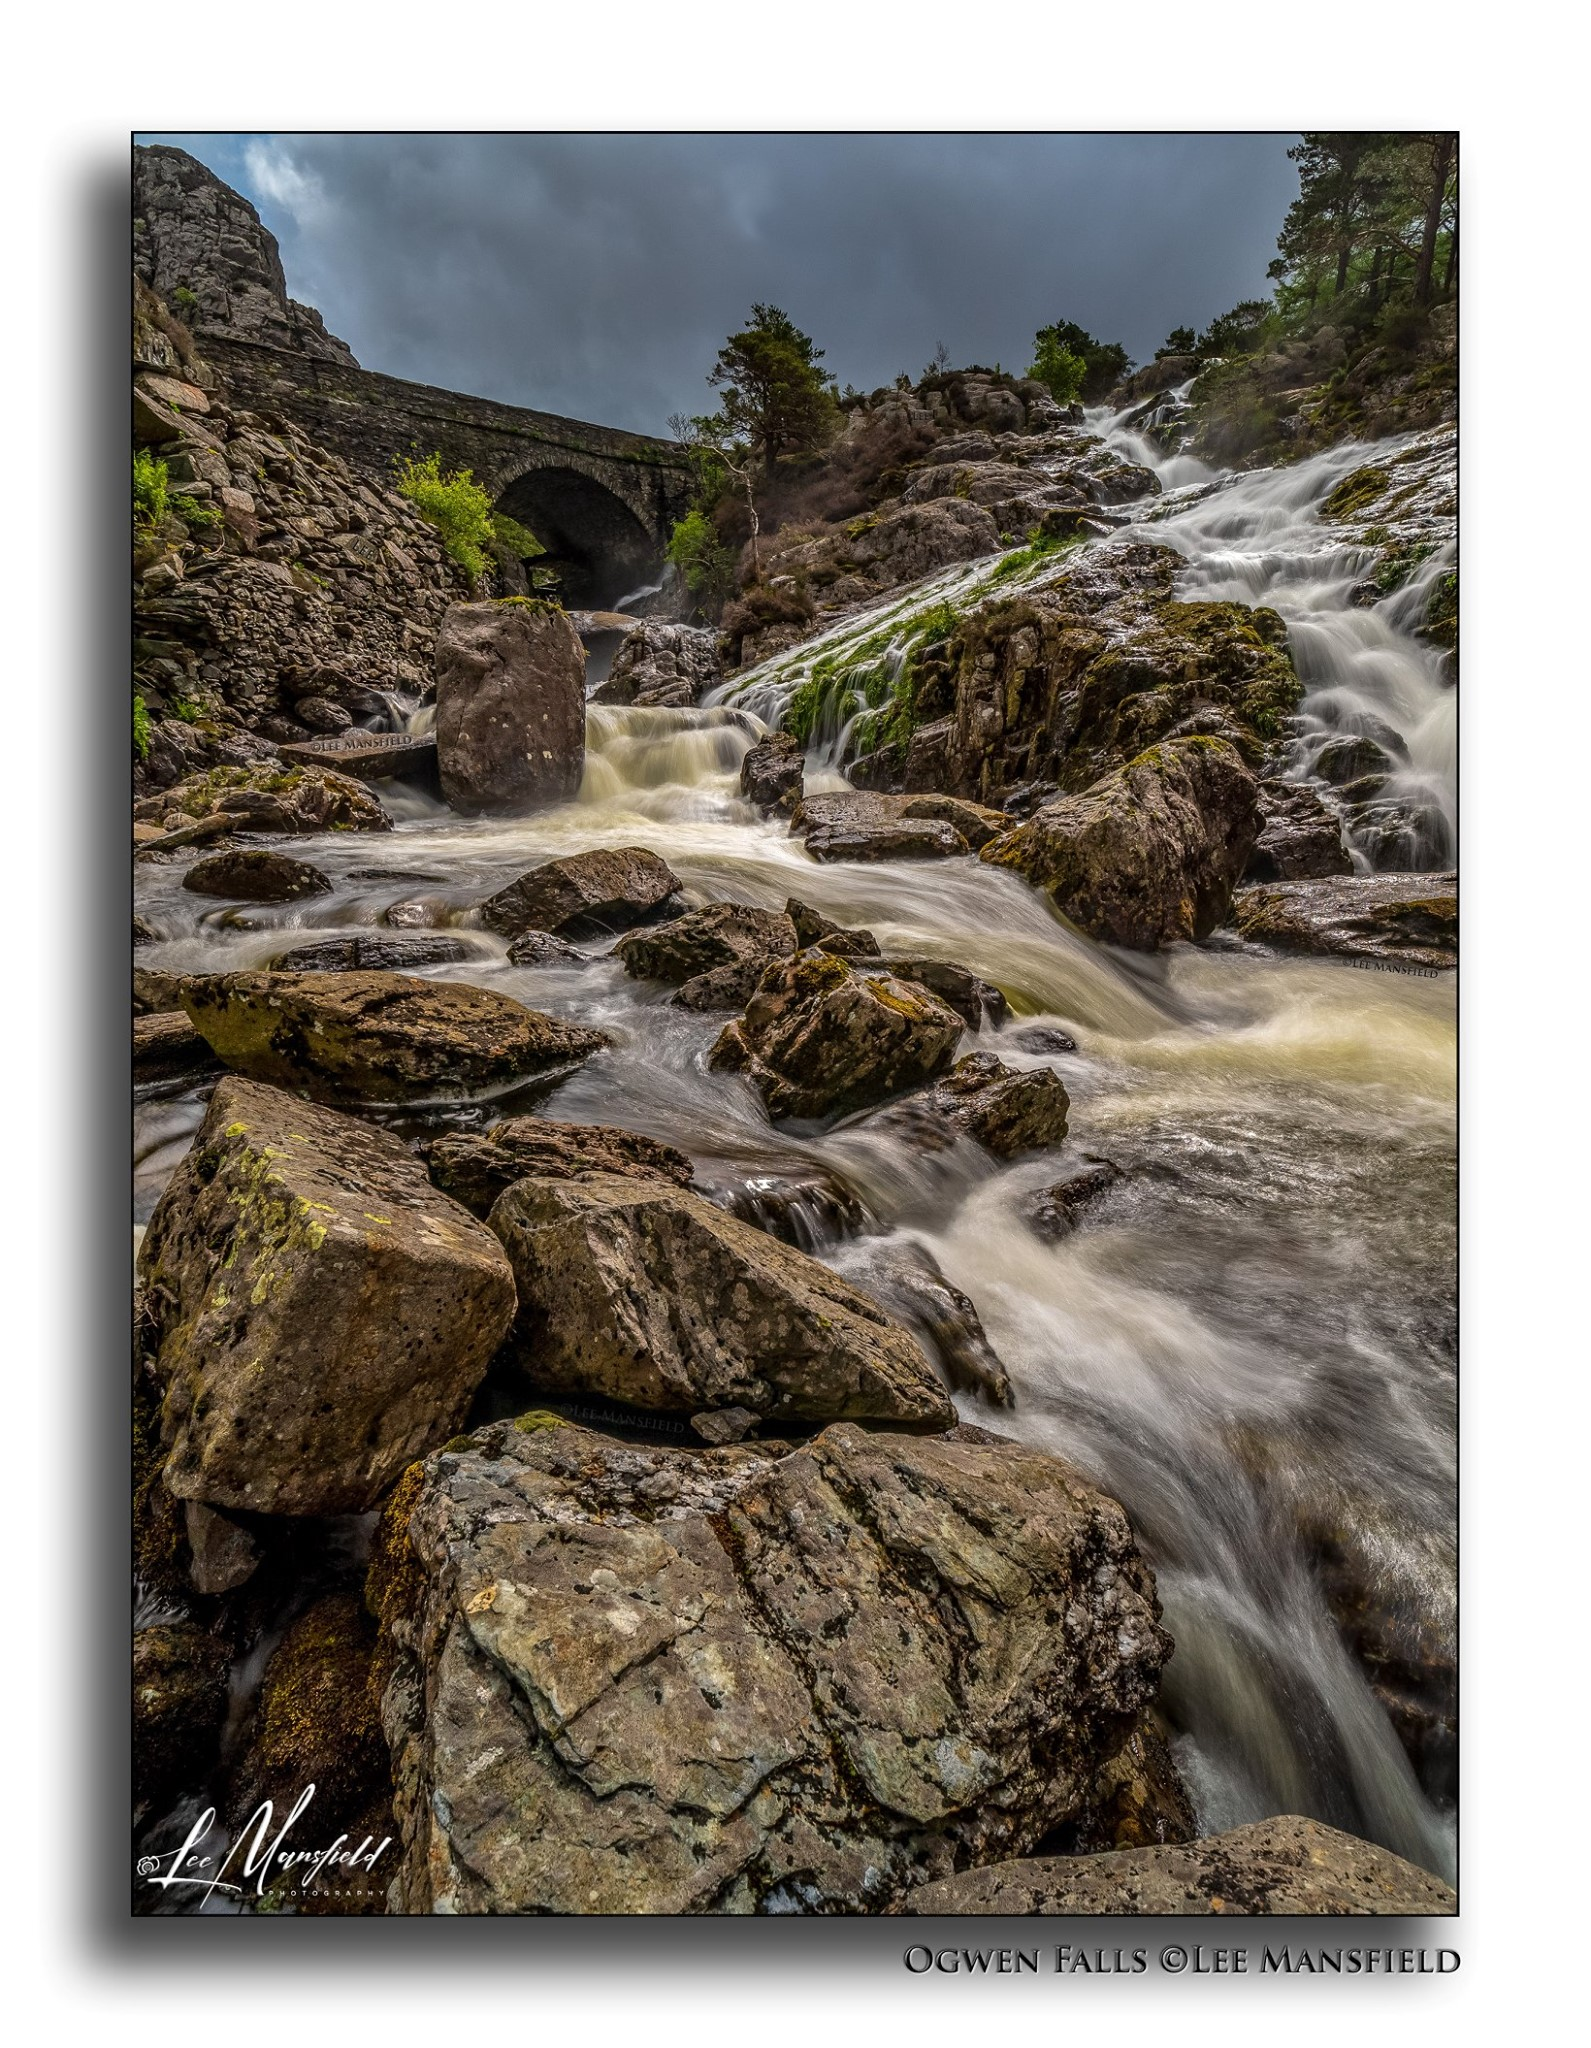 Ogwen Falls (portrait version)